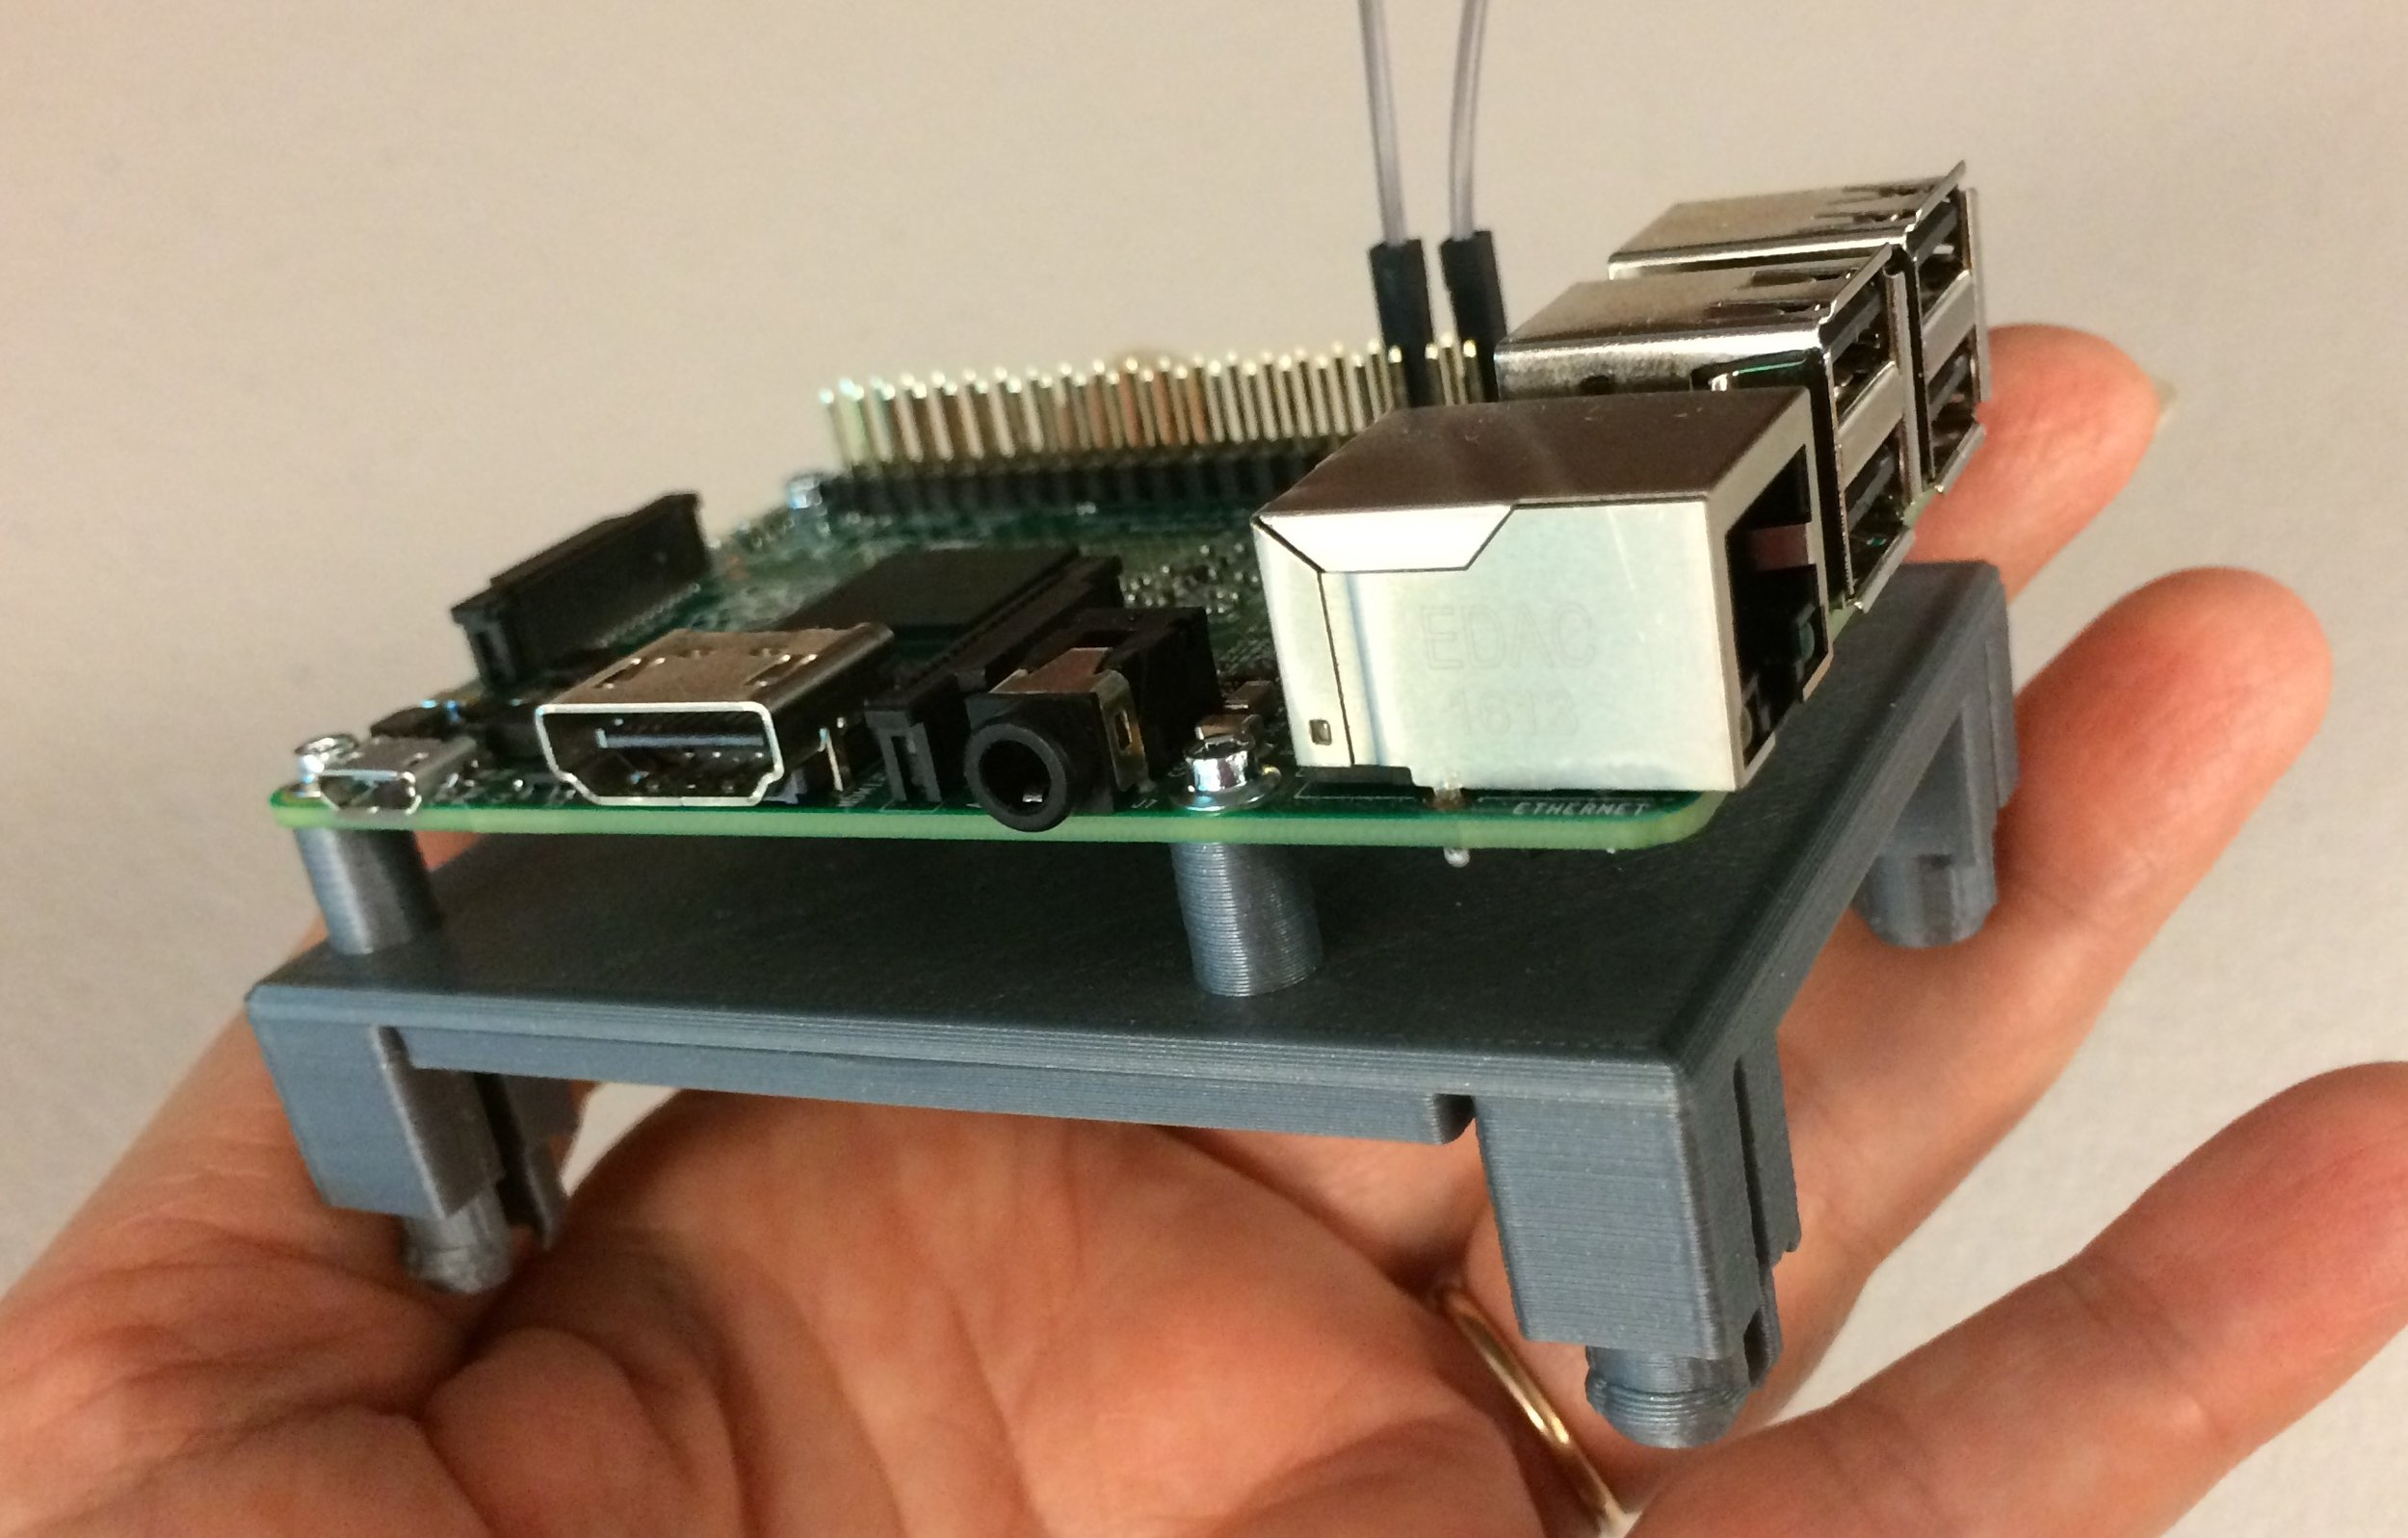 The Slide-mounted Pi is connected to the Click. Whoohoo! - See how easy that was?  The prep work is all done.  Now you will see how this makes your entire project so much more fun!